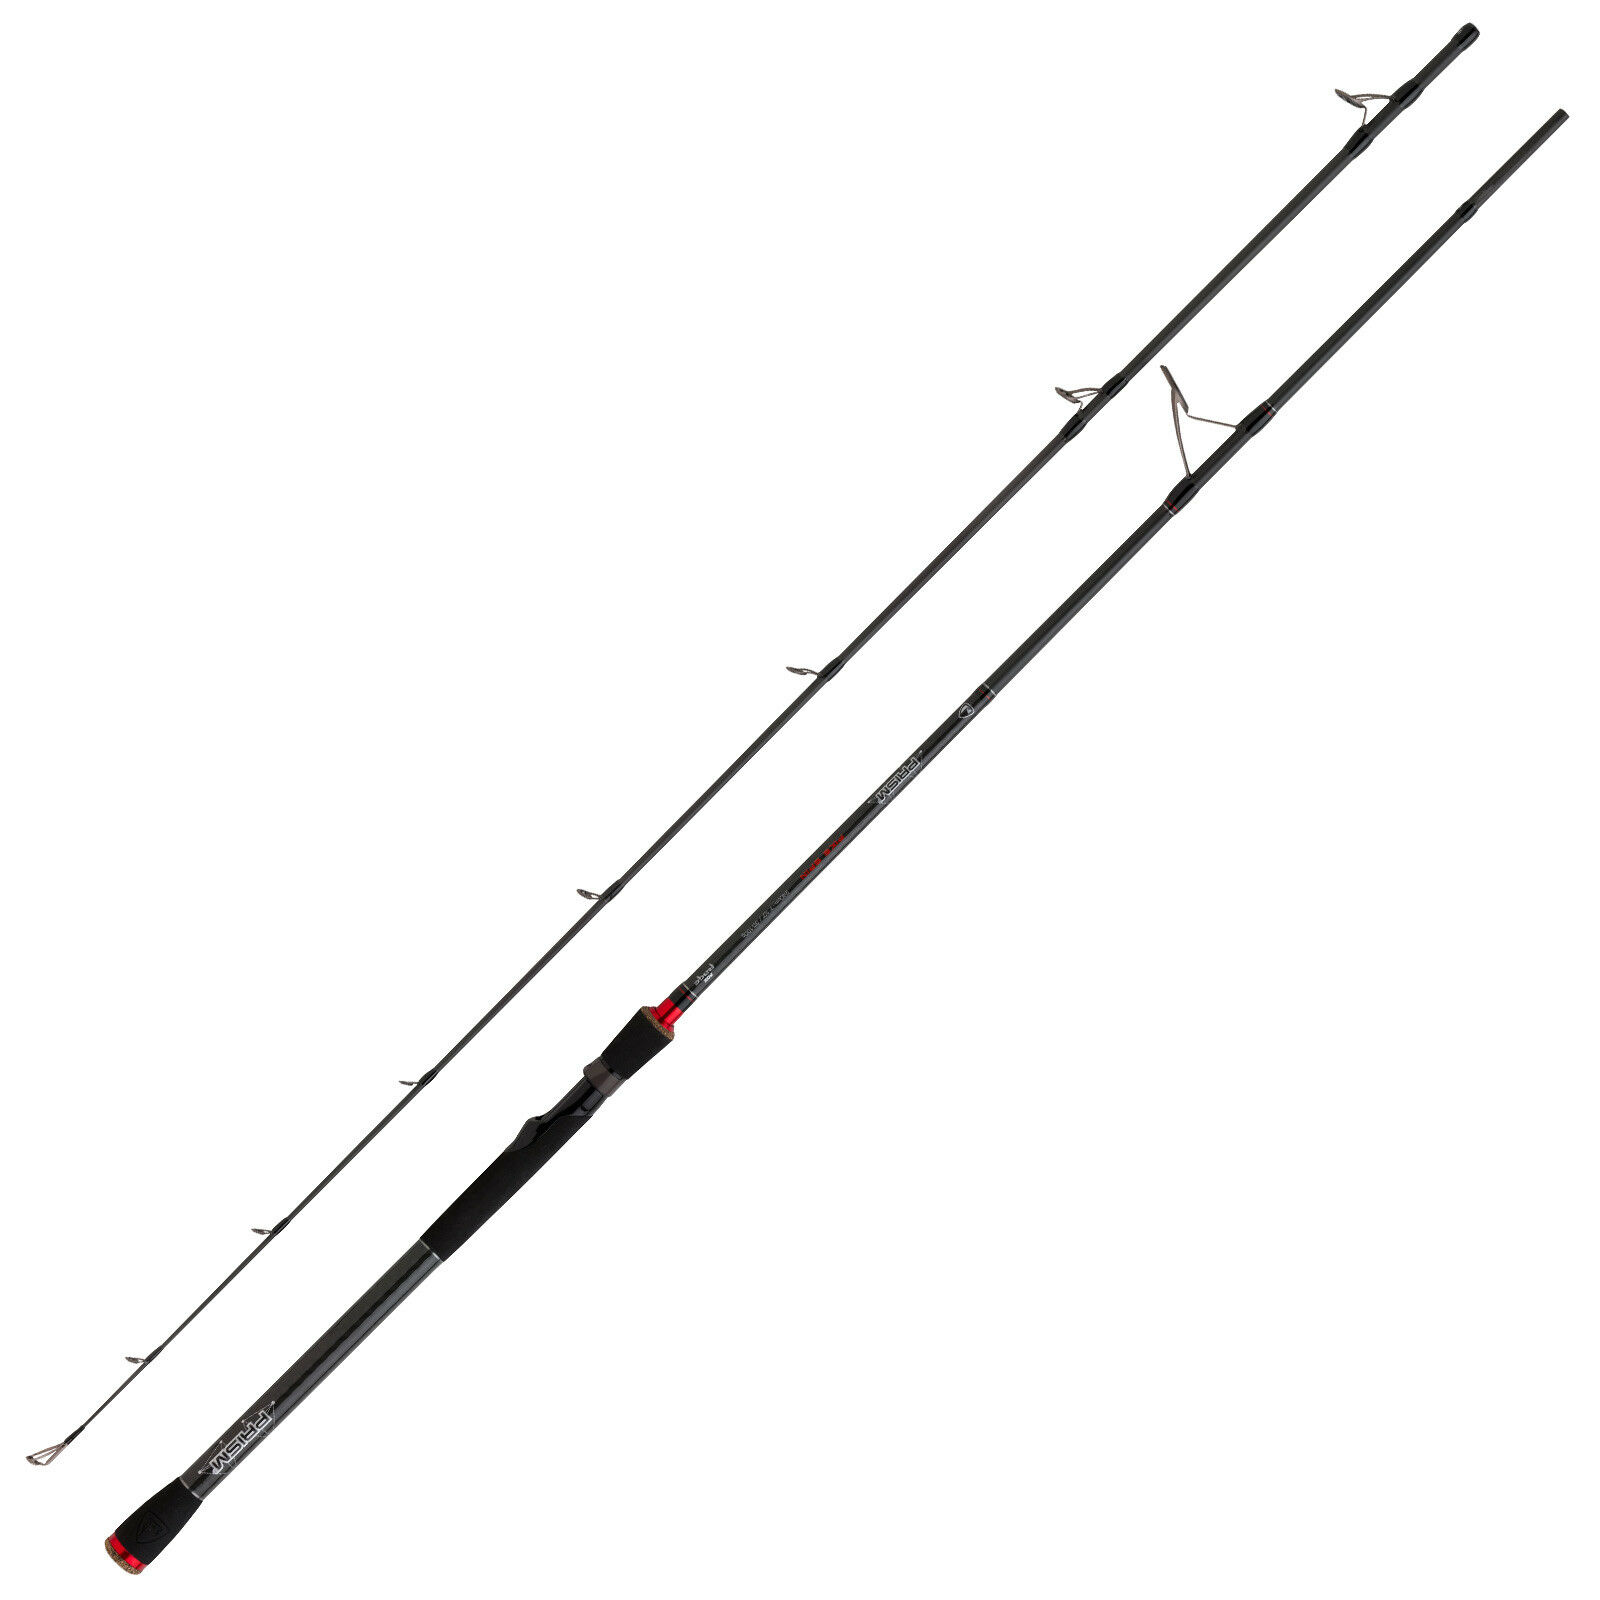 Fox Rage spinning luccio pesca stadia-Prism Pike SPIN 2,40m 30-100g